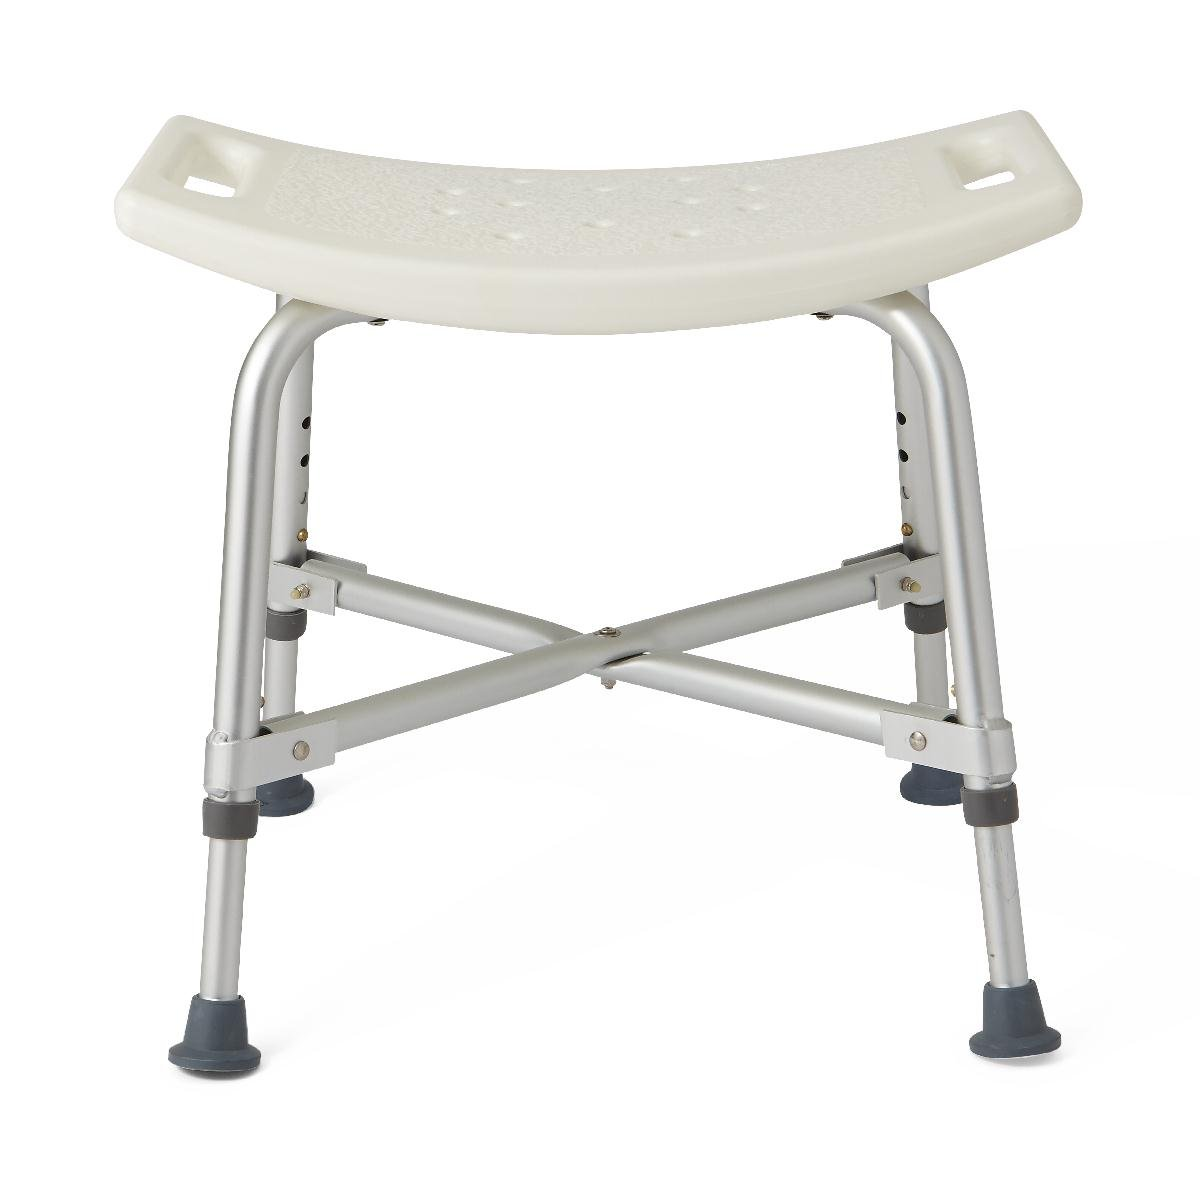 Medline Heavy Duty Shower Chair Bath Bench without Back, Bariatric Bath Chair Supports up to 500 lbs